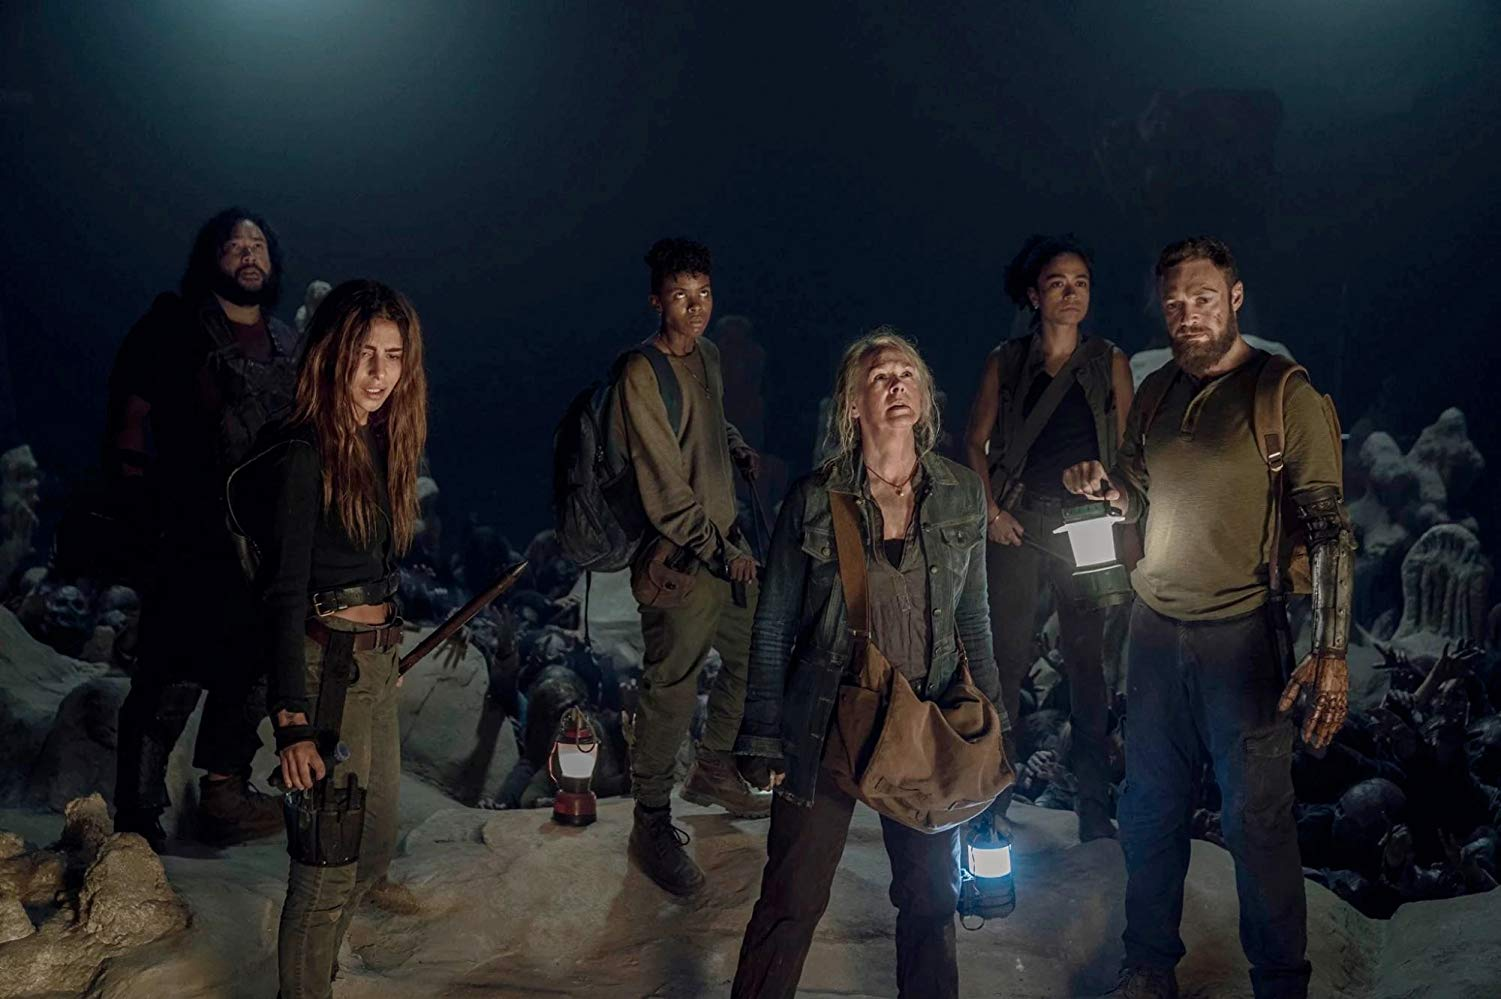 Carol, Magna, connie, Aaron, Jerry y Kelly, en la cueva de caminantes en el episodio 10x09 Squeeze de The Walking Dead